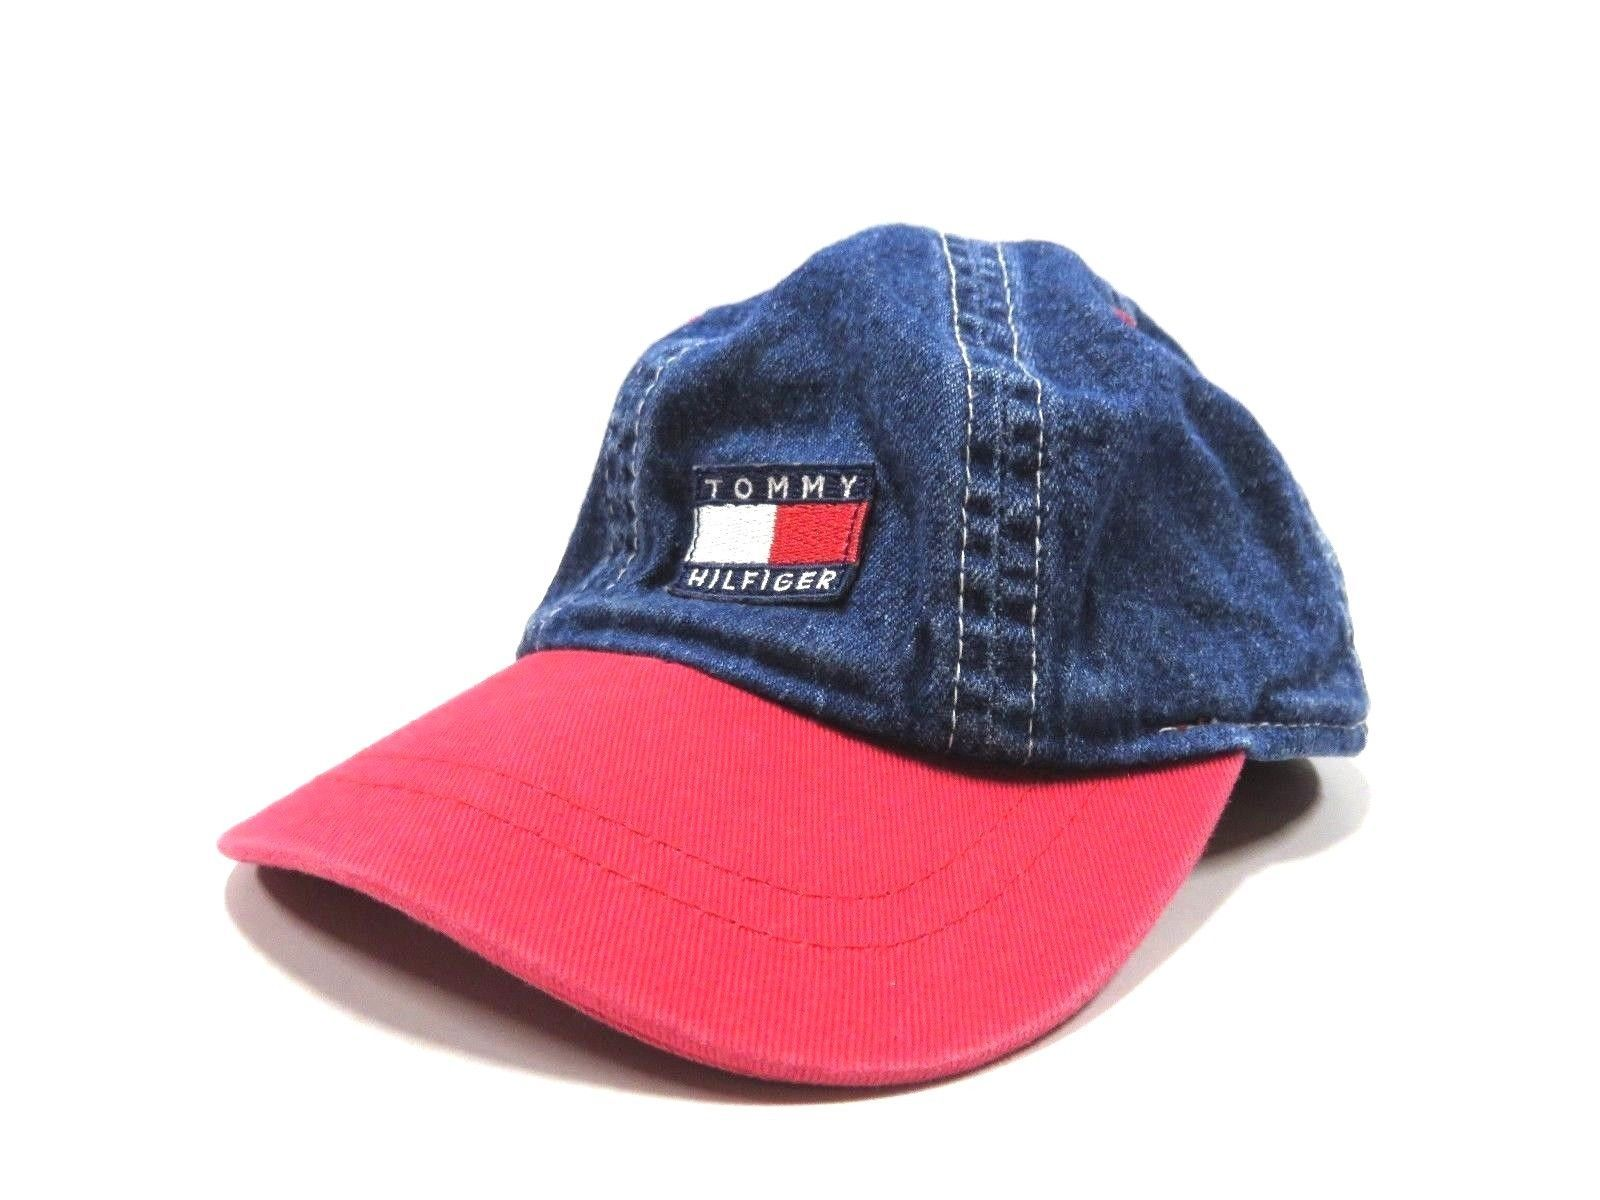 11f0d75d 90s Retro Vtg Tommy Hilfiger Baby/Infant and 50 similar items